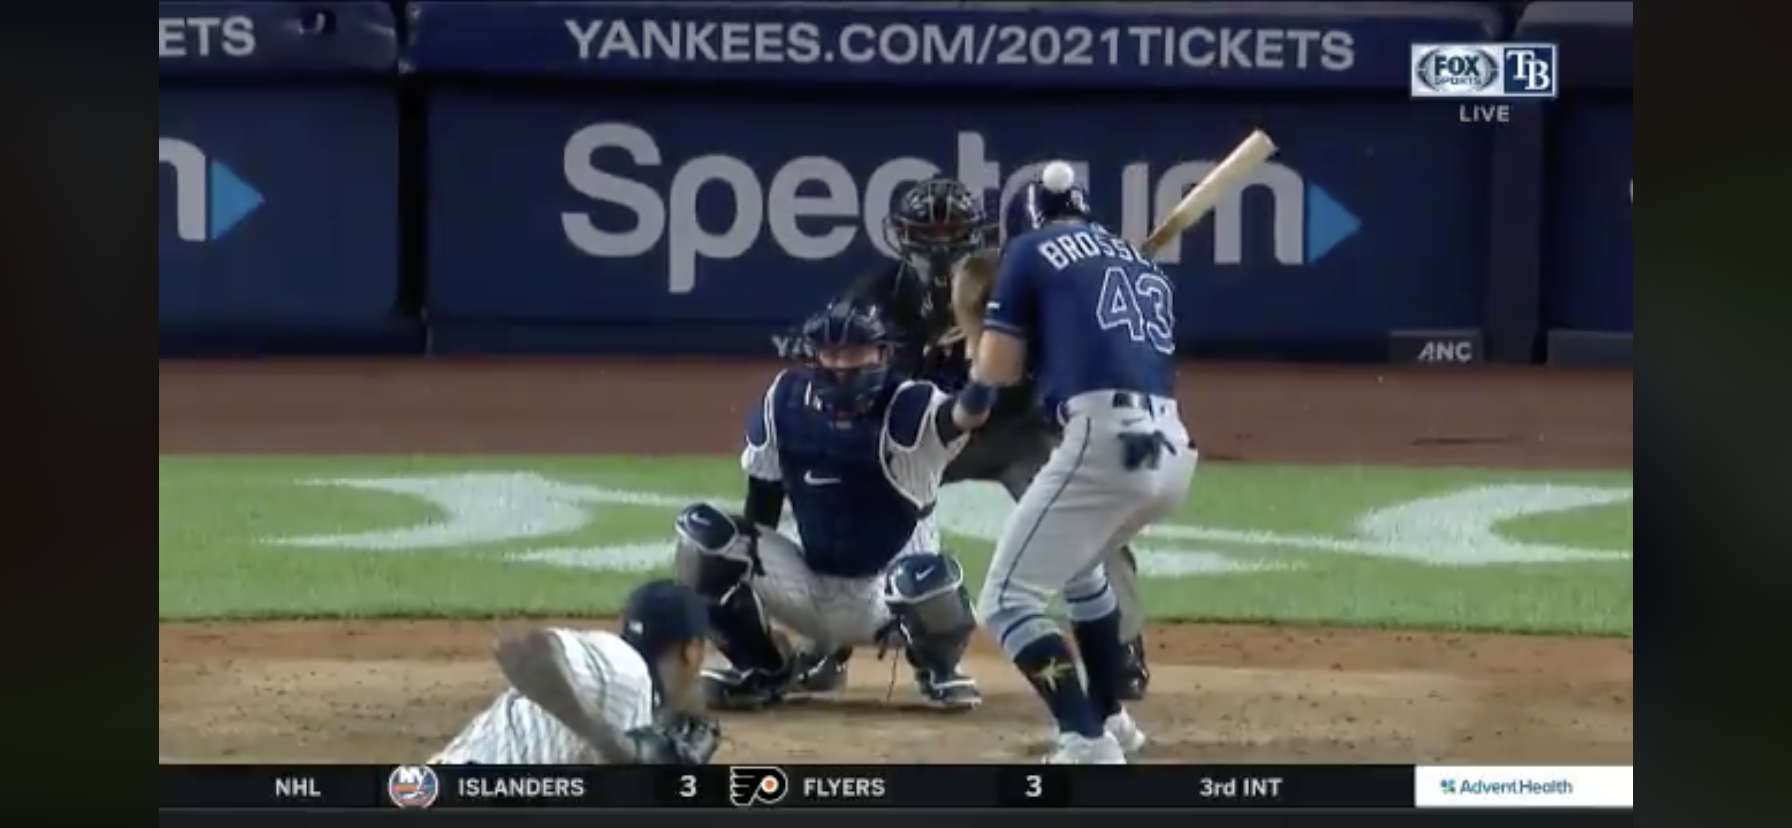 ICYMI: The Yankees Are Still Scumbags